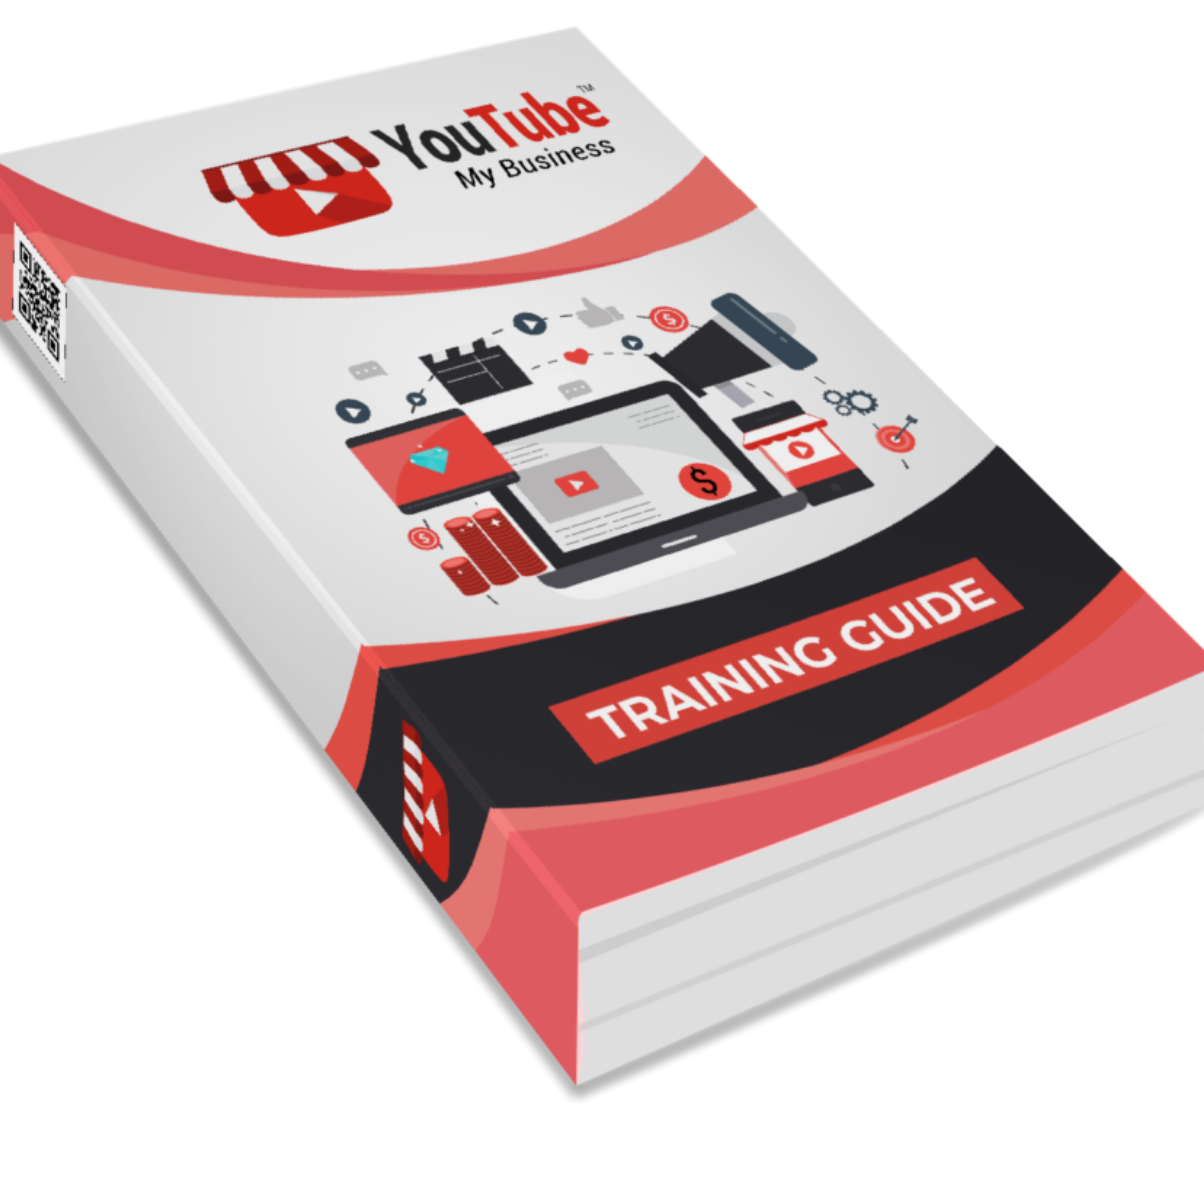 YouTube My Business full Training Guide